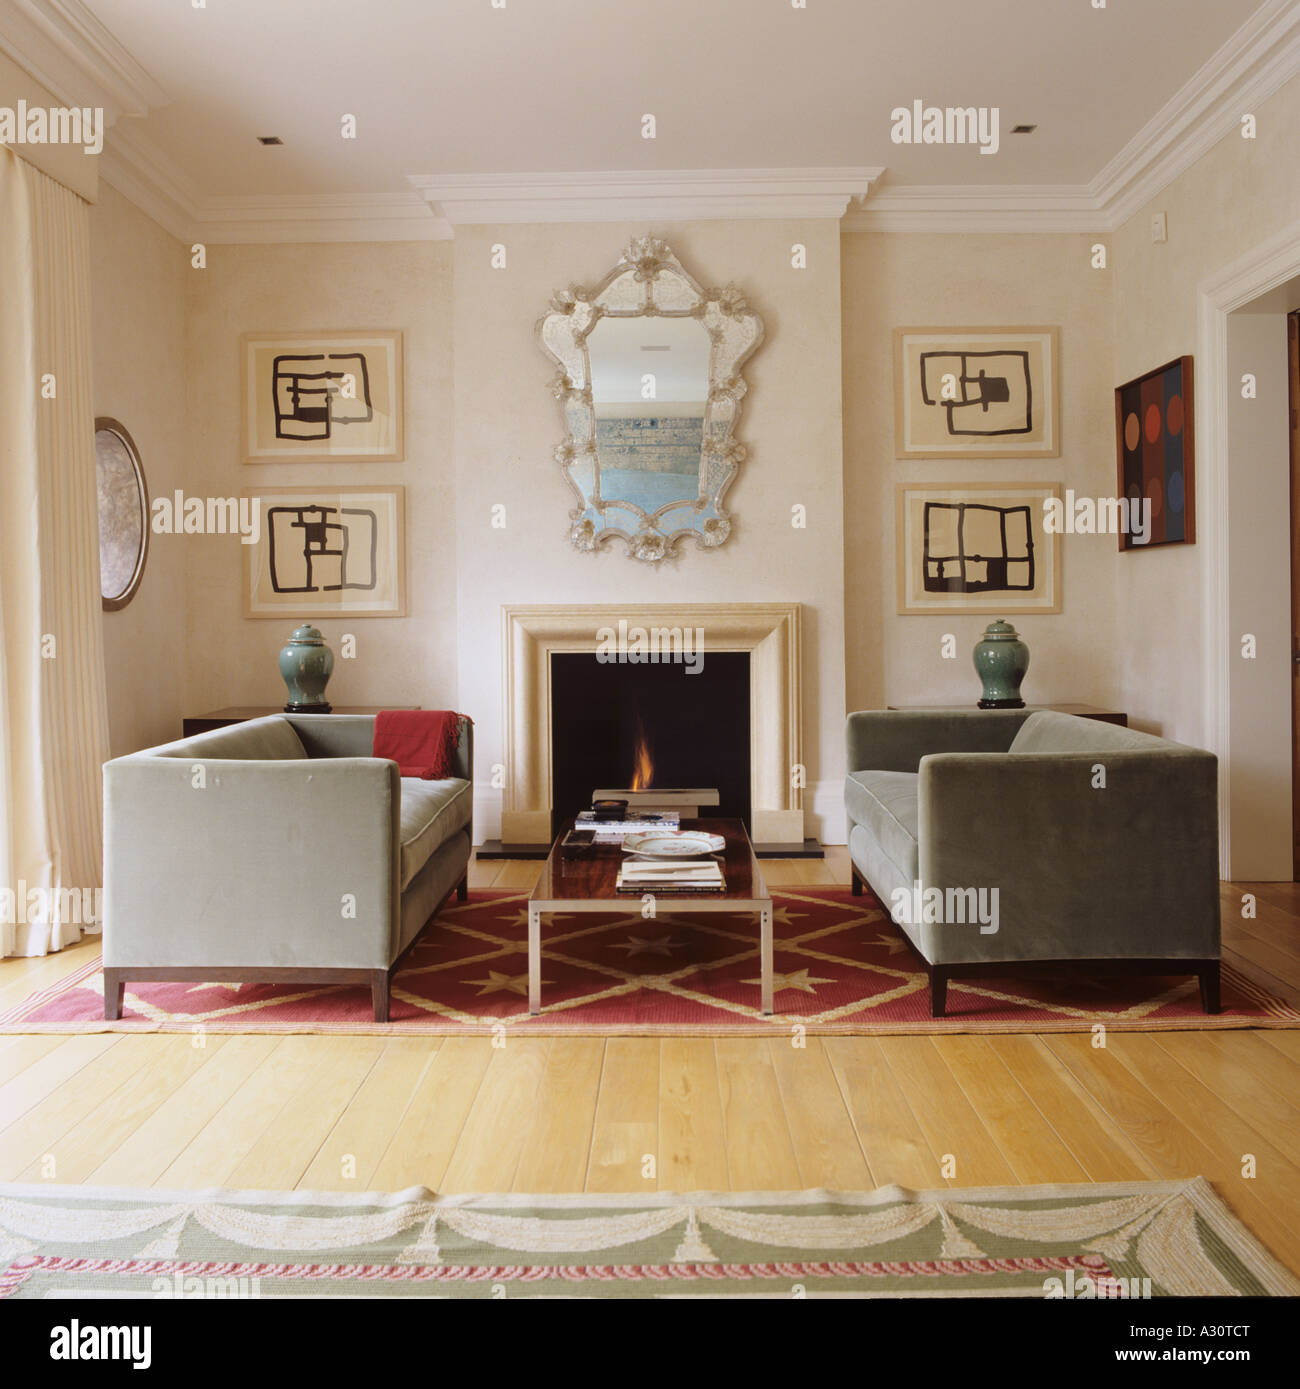 Fireplace in a London drawing room and symmetrically placed sofas - Stock Image